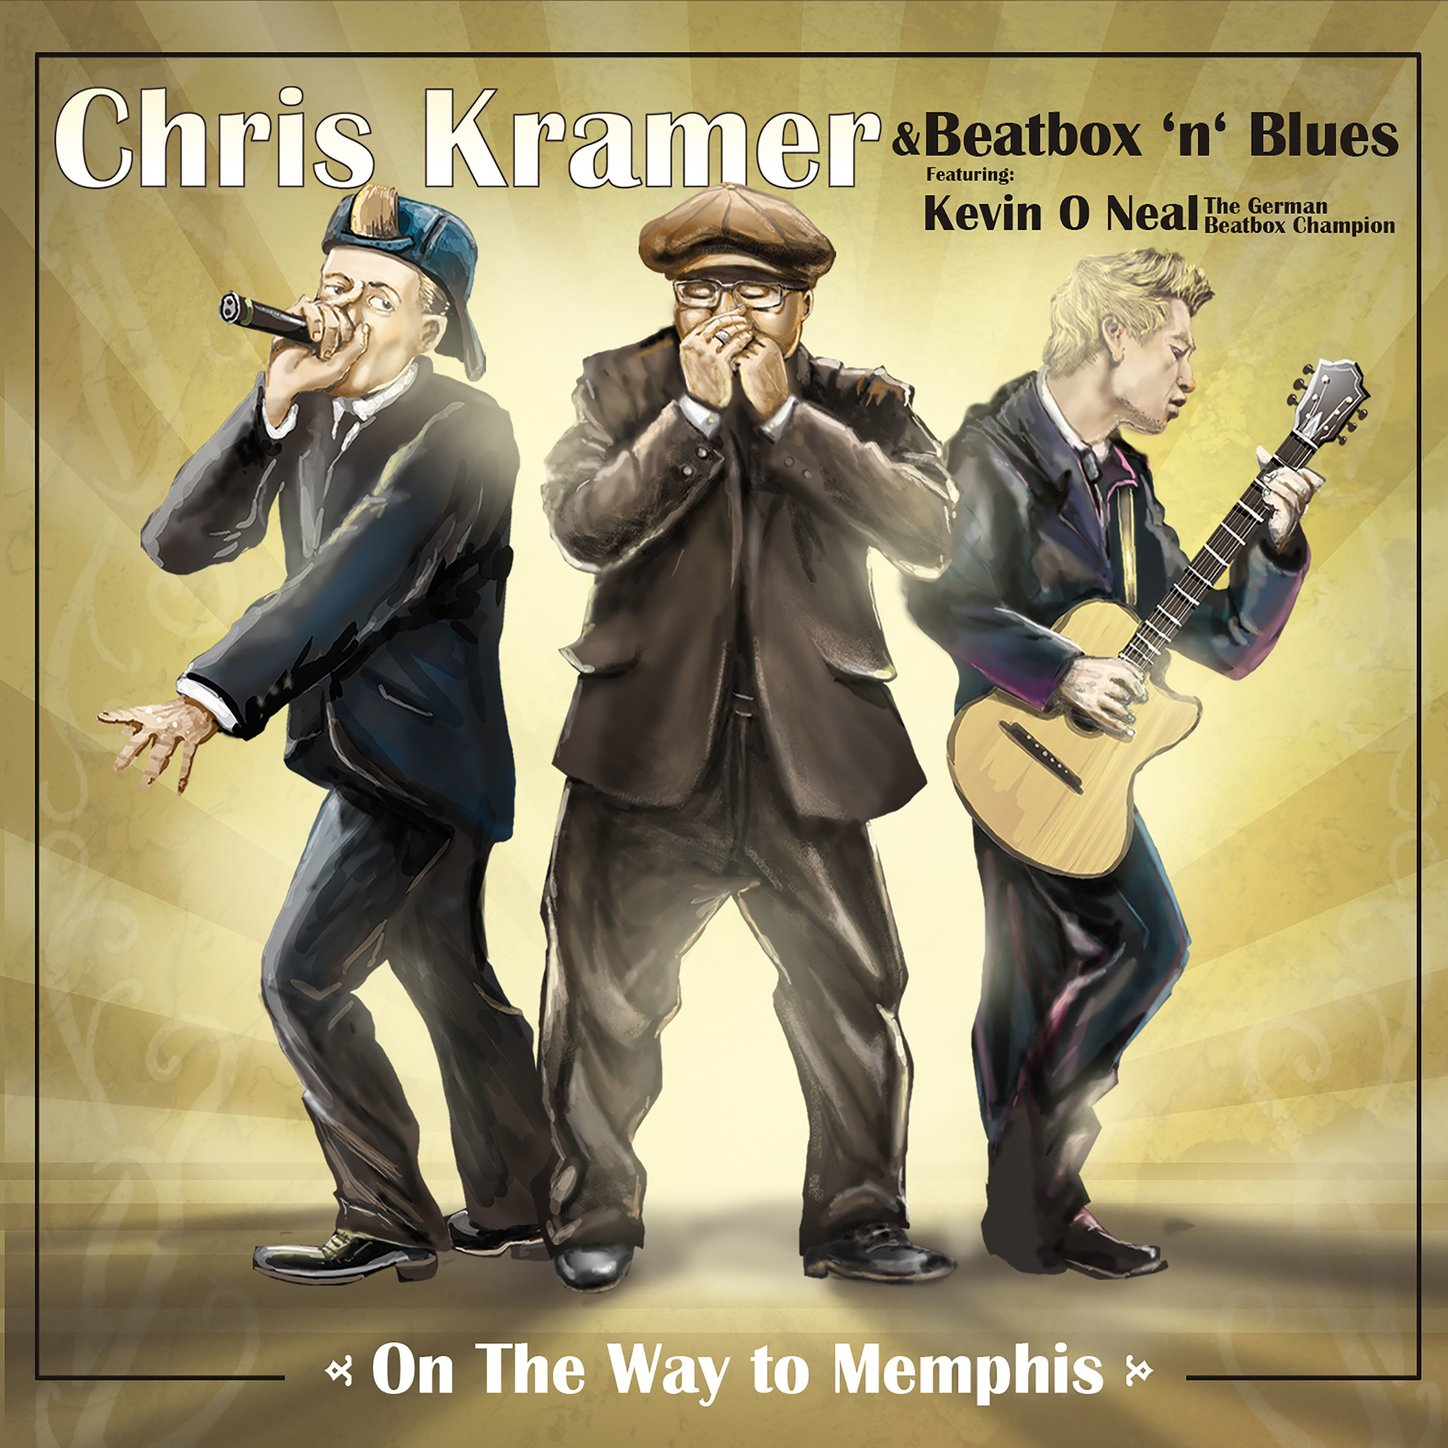 Chris Kramer & Beatbox 'n' Blues - On The Way to Memphis (2017) [FLAC] Download